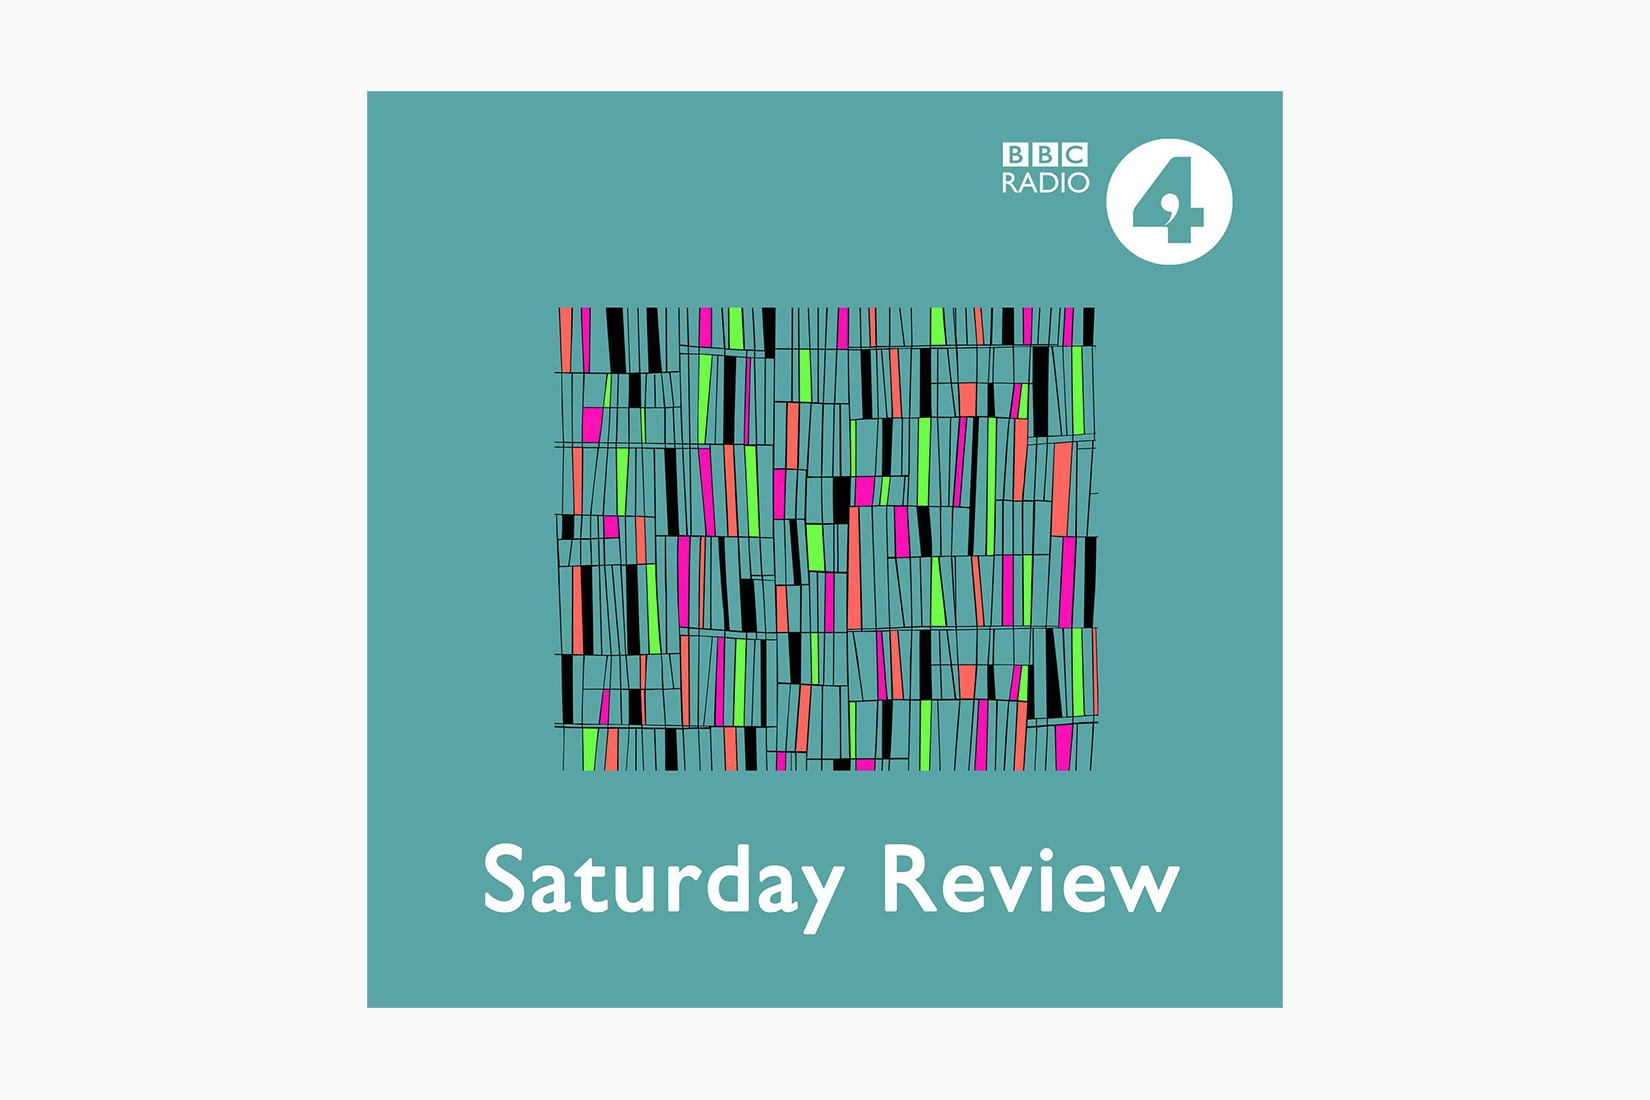 best podcasts saturday review bbc radio luxe digital